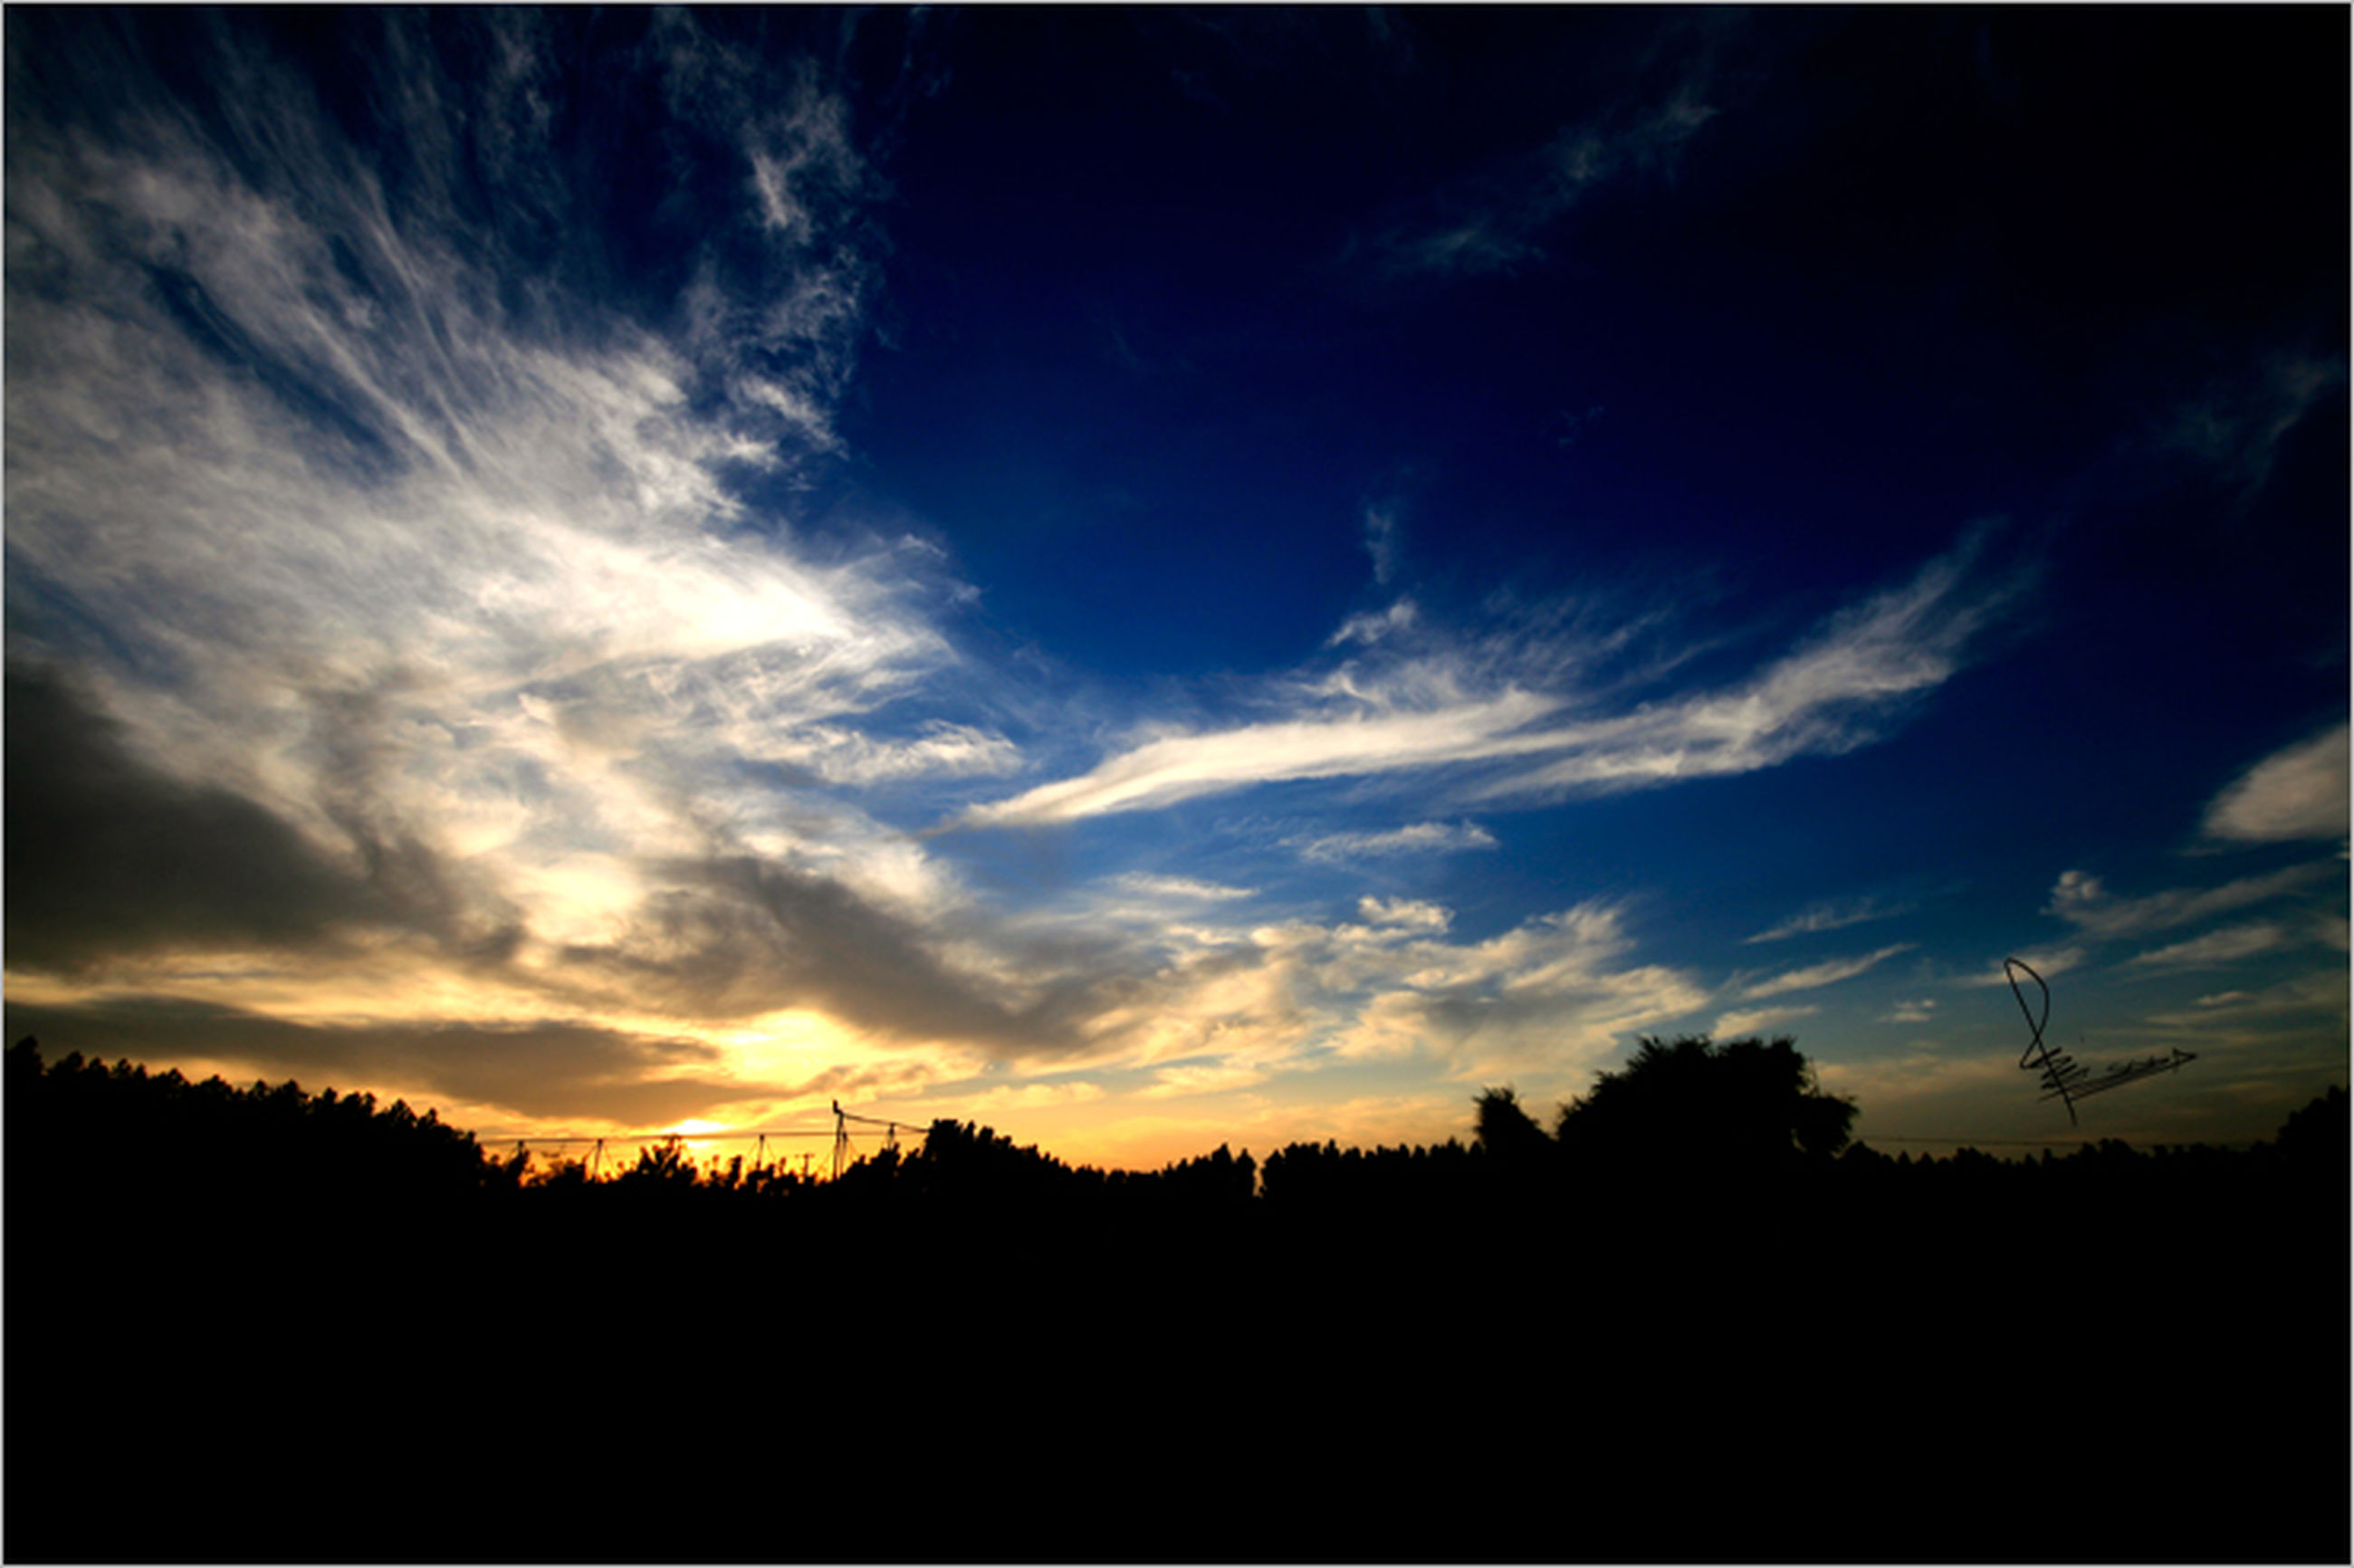 silhouette, sunset, tranquil scene, scenics, tranquility, sky, beauty in nature, tree, nature, cloud - sky, landscape, idyllic, dark, cloud, outline, outdoors, dramatic sky, non urban scene, non-urban scene, no people